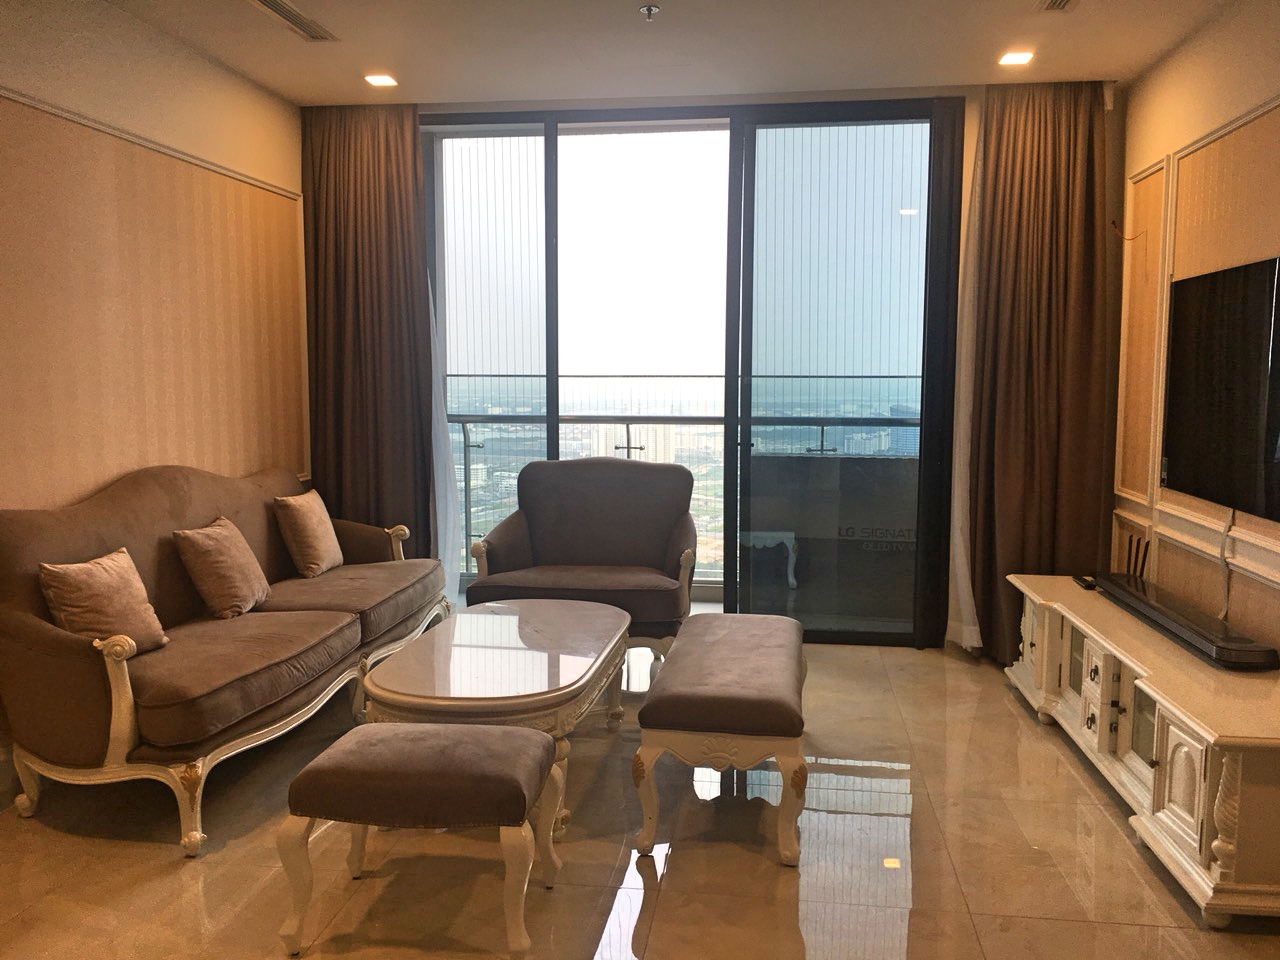 vinhomes golden river apartment for rent in district 1 hcmc D1022699 (8)